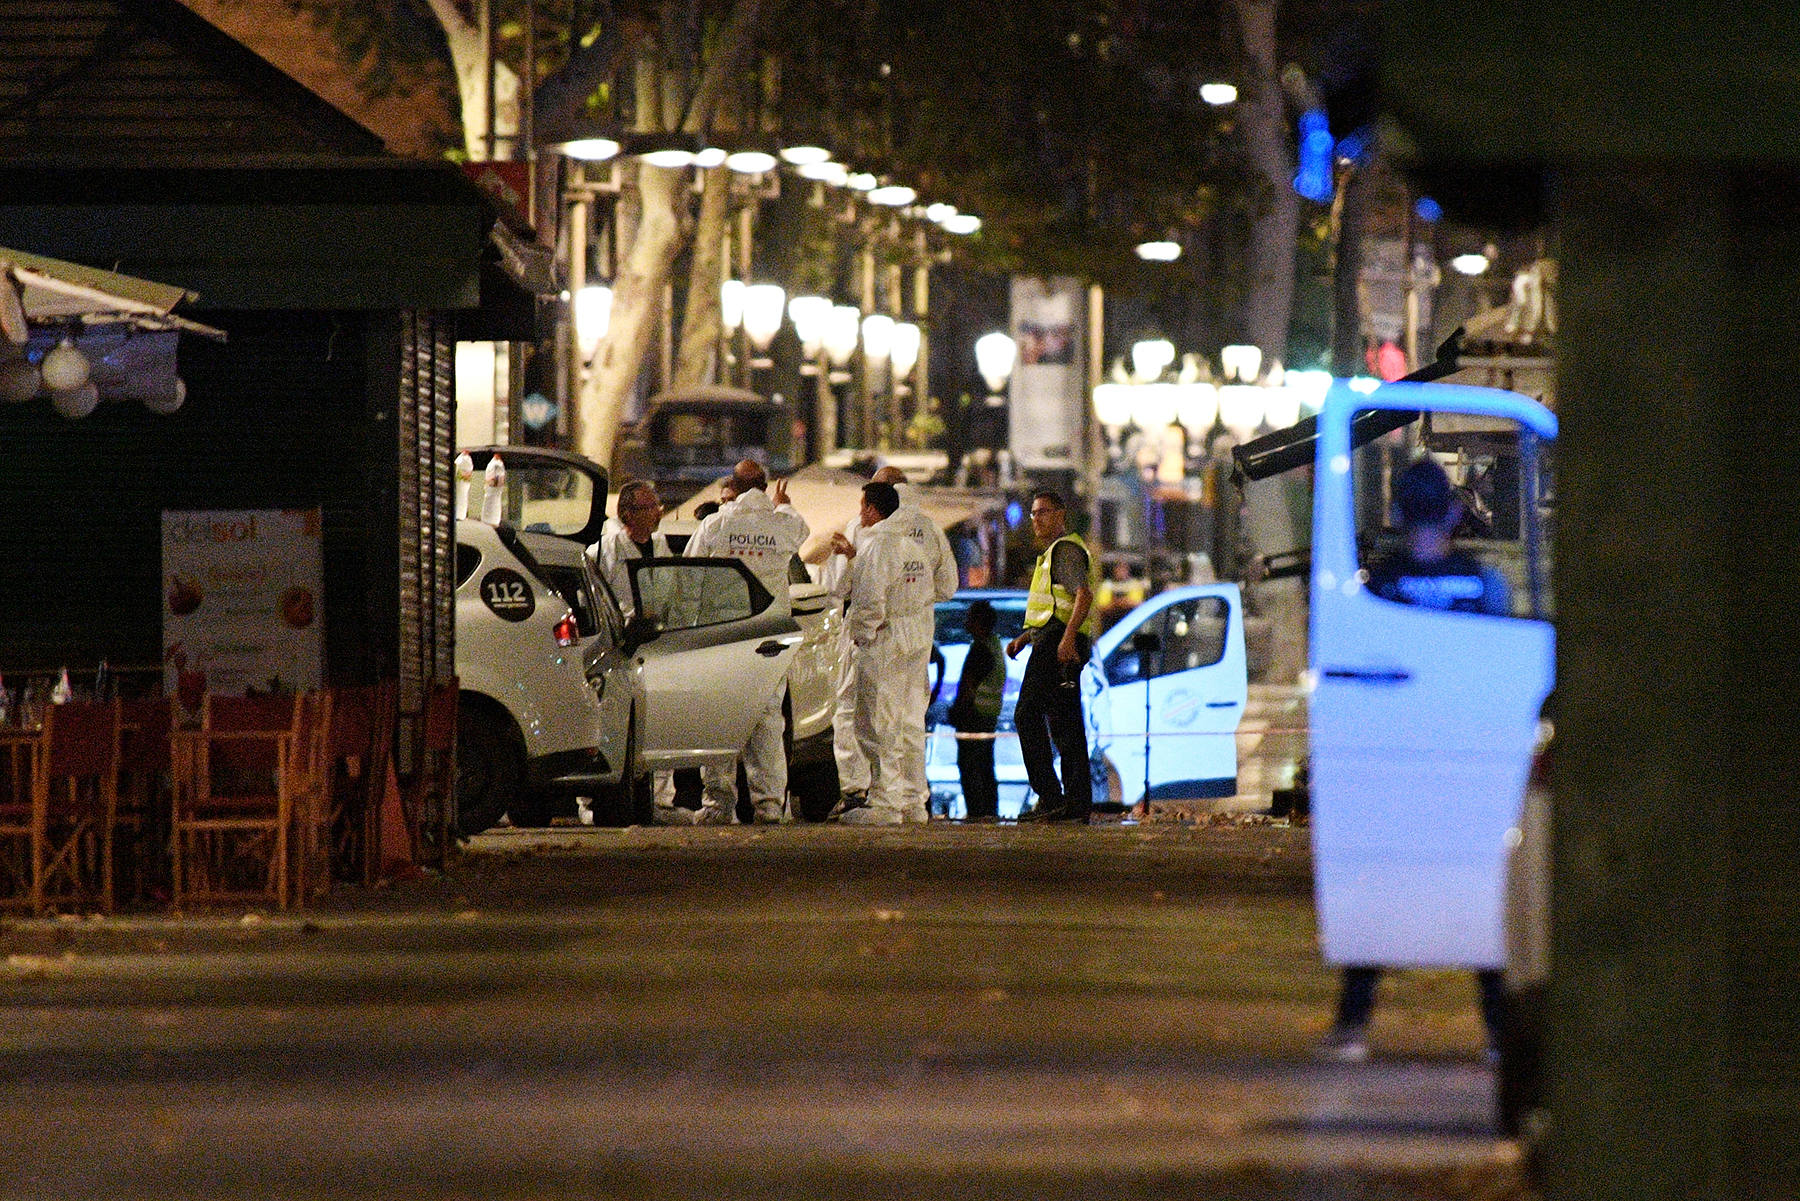 A damaged van, believed to be the one used in the attack, is surrounded by forensics officers in the Las Ramblas area on August 17, 2017 in Barcelona, Spain.